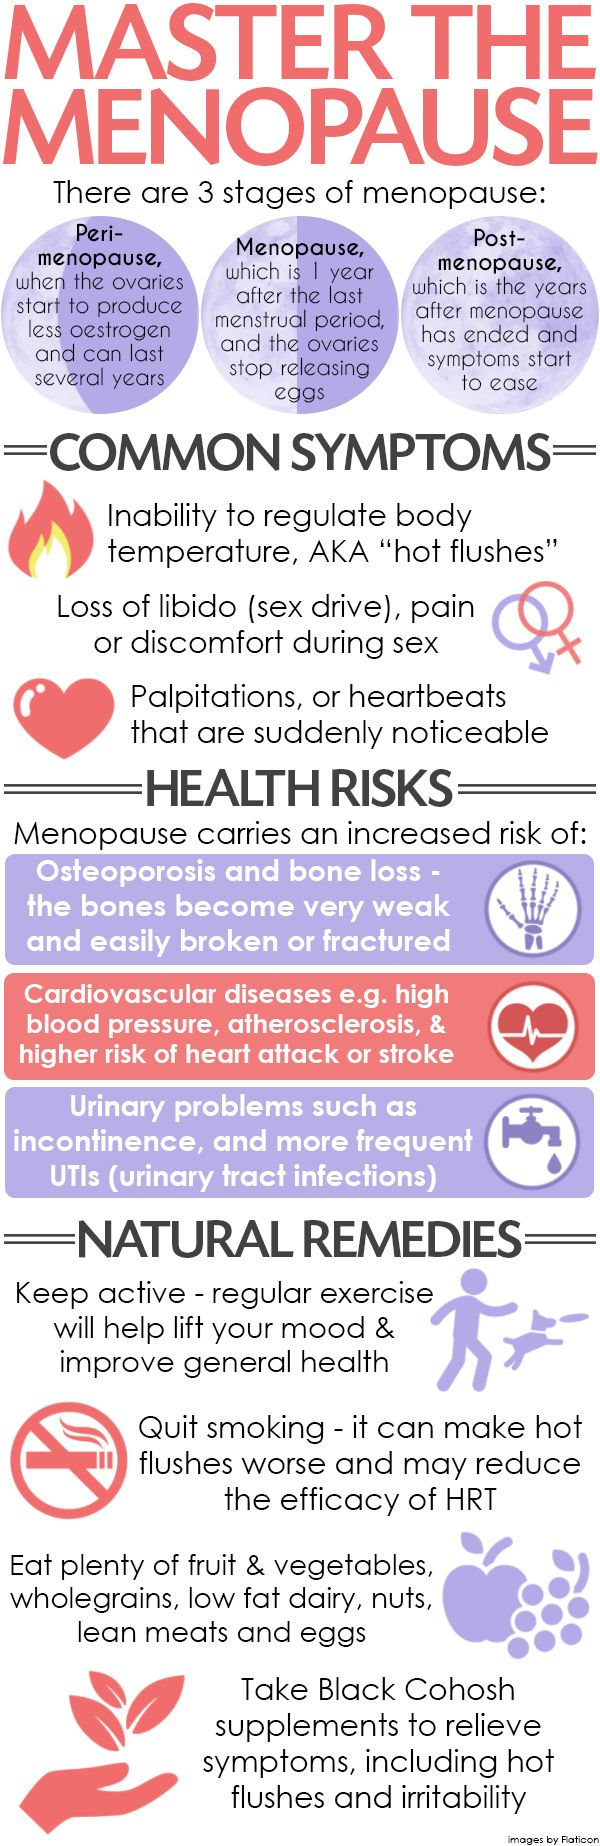 Top tips on how you can master the menopause! With facts, common symptoms, and natural remedies to alleviate hot flushes.